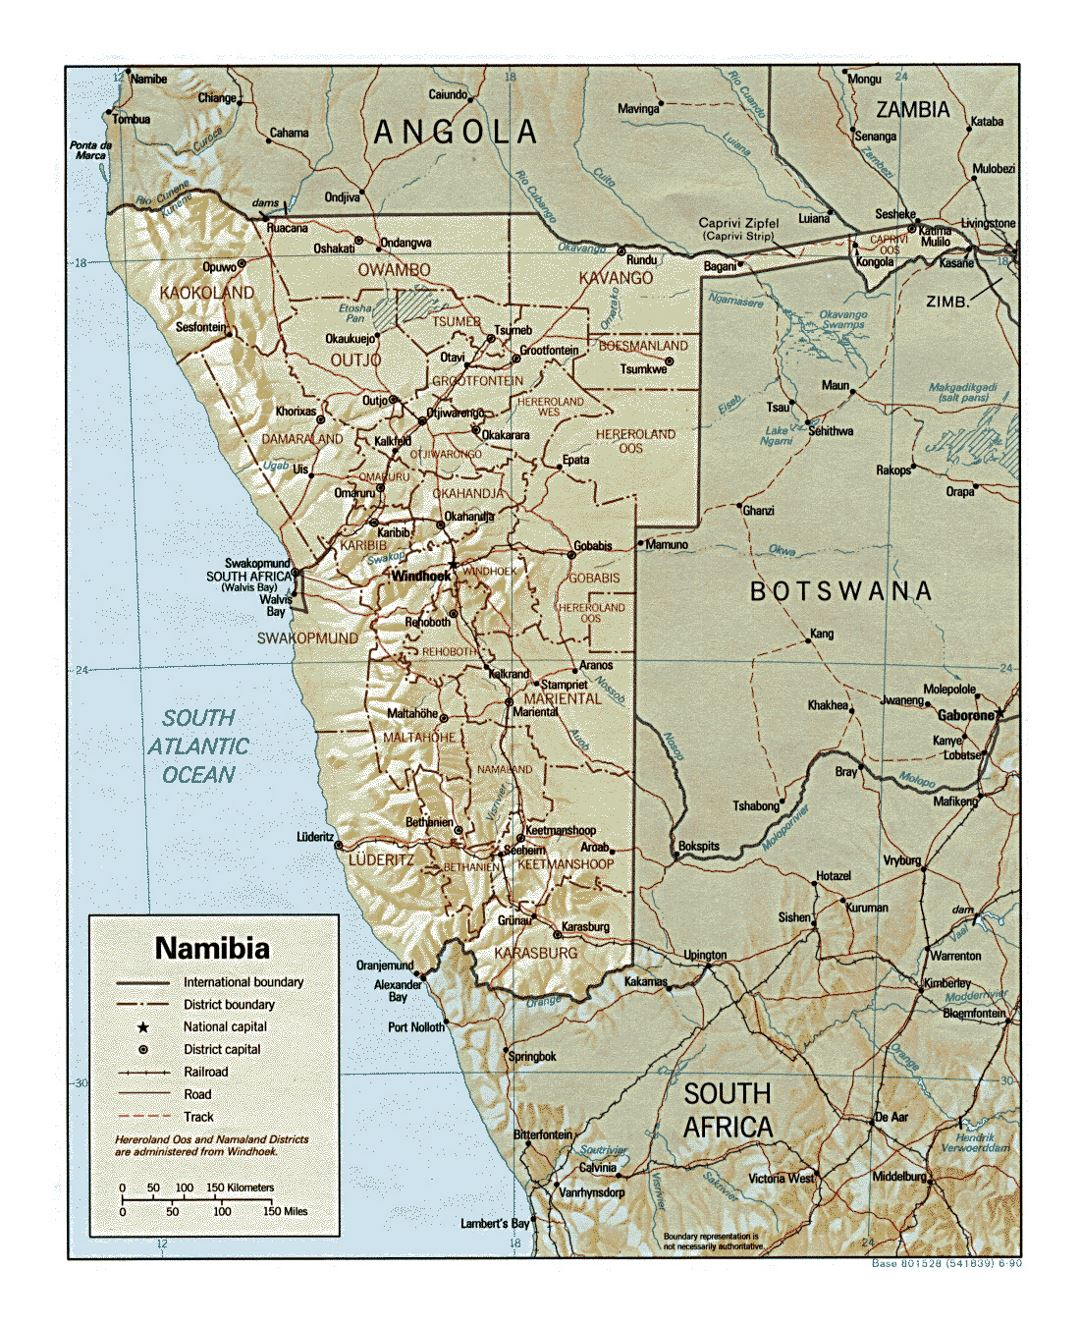 Detailed political and administrative map of Namibia with relief, roads, railroads and major cities - 1990